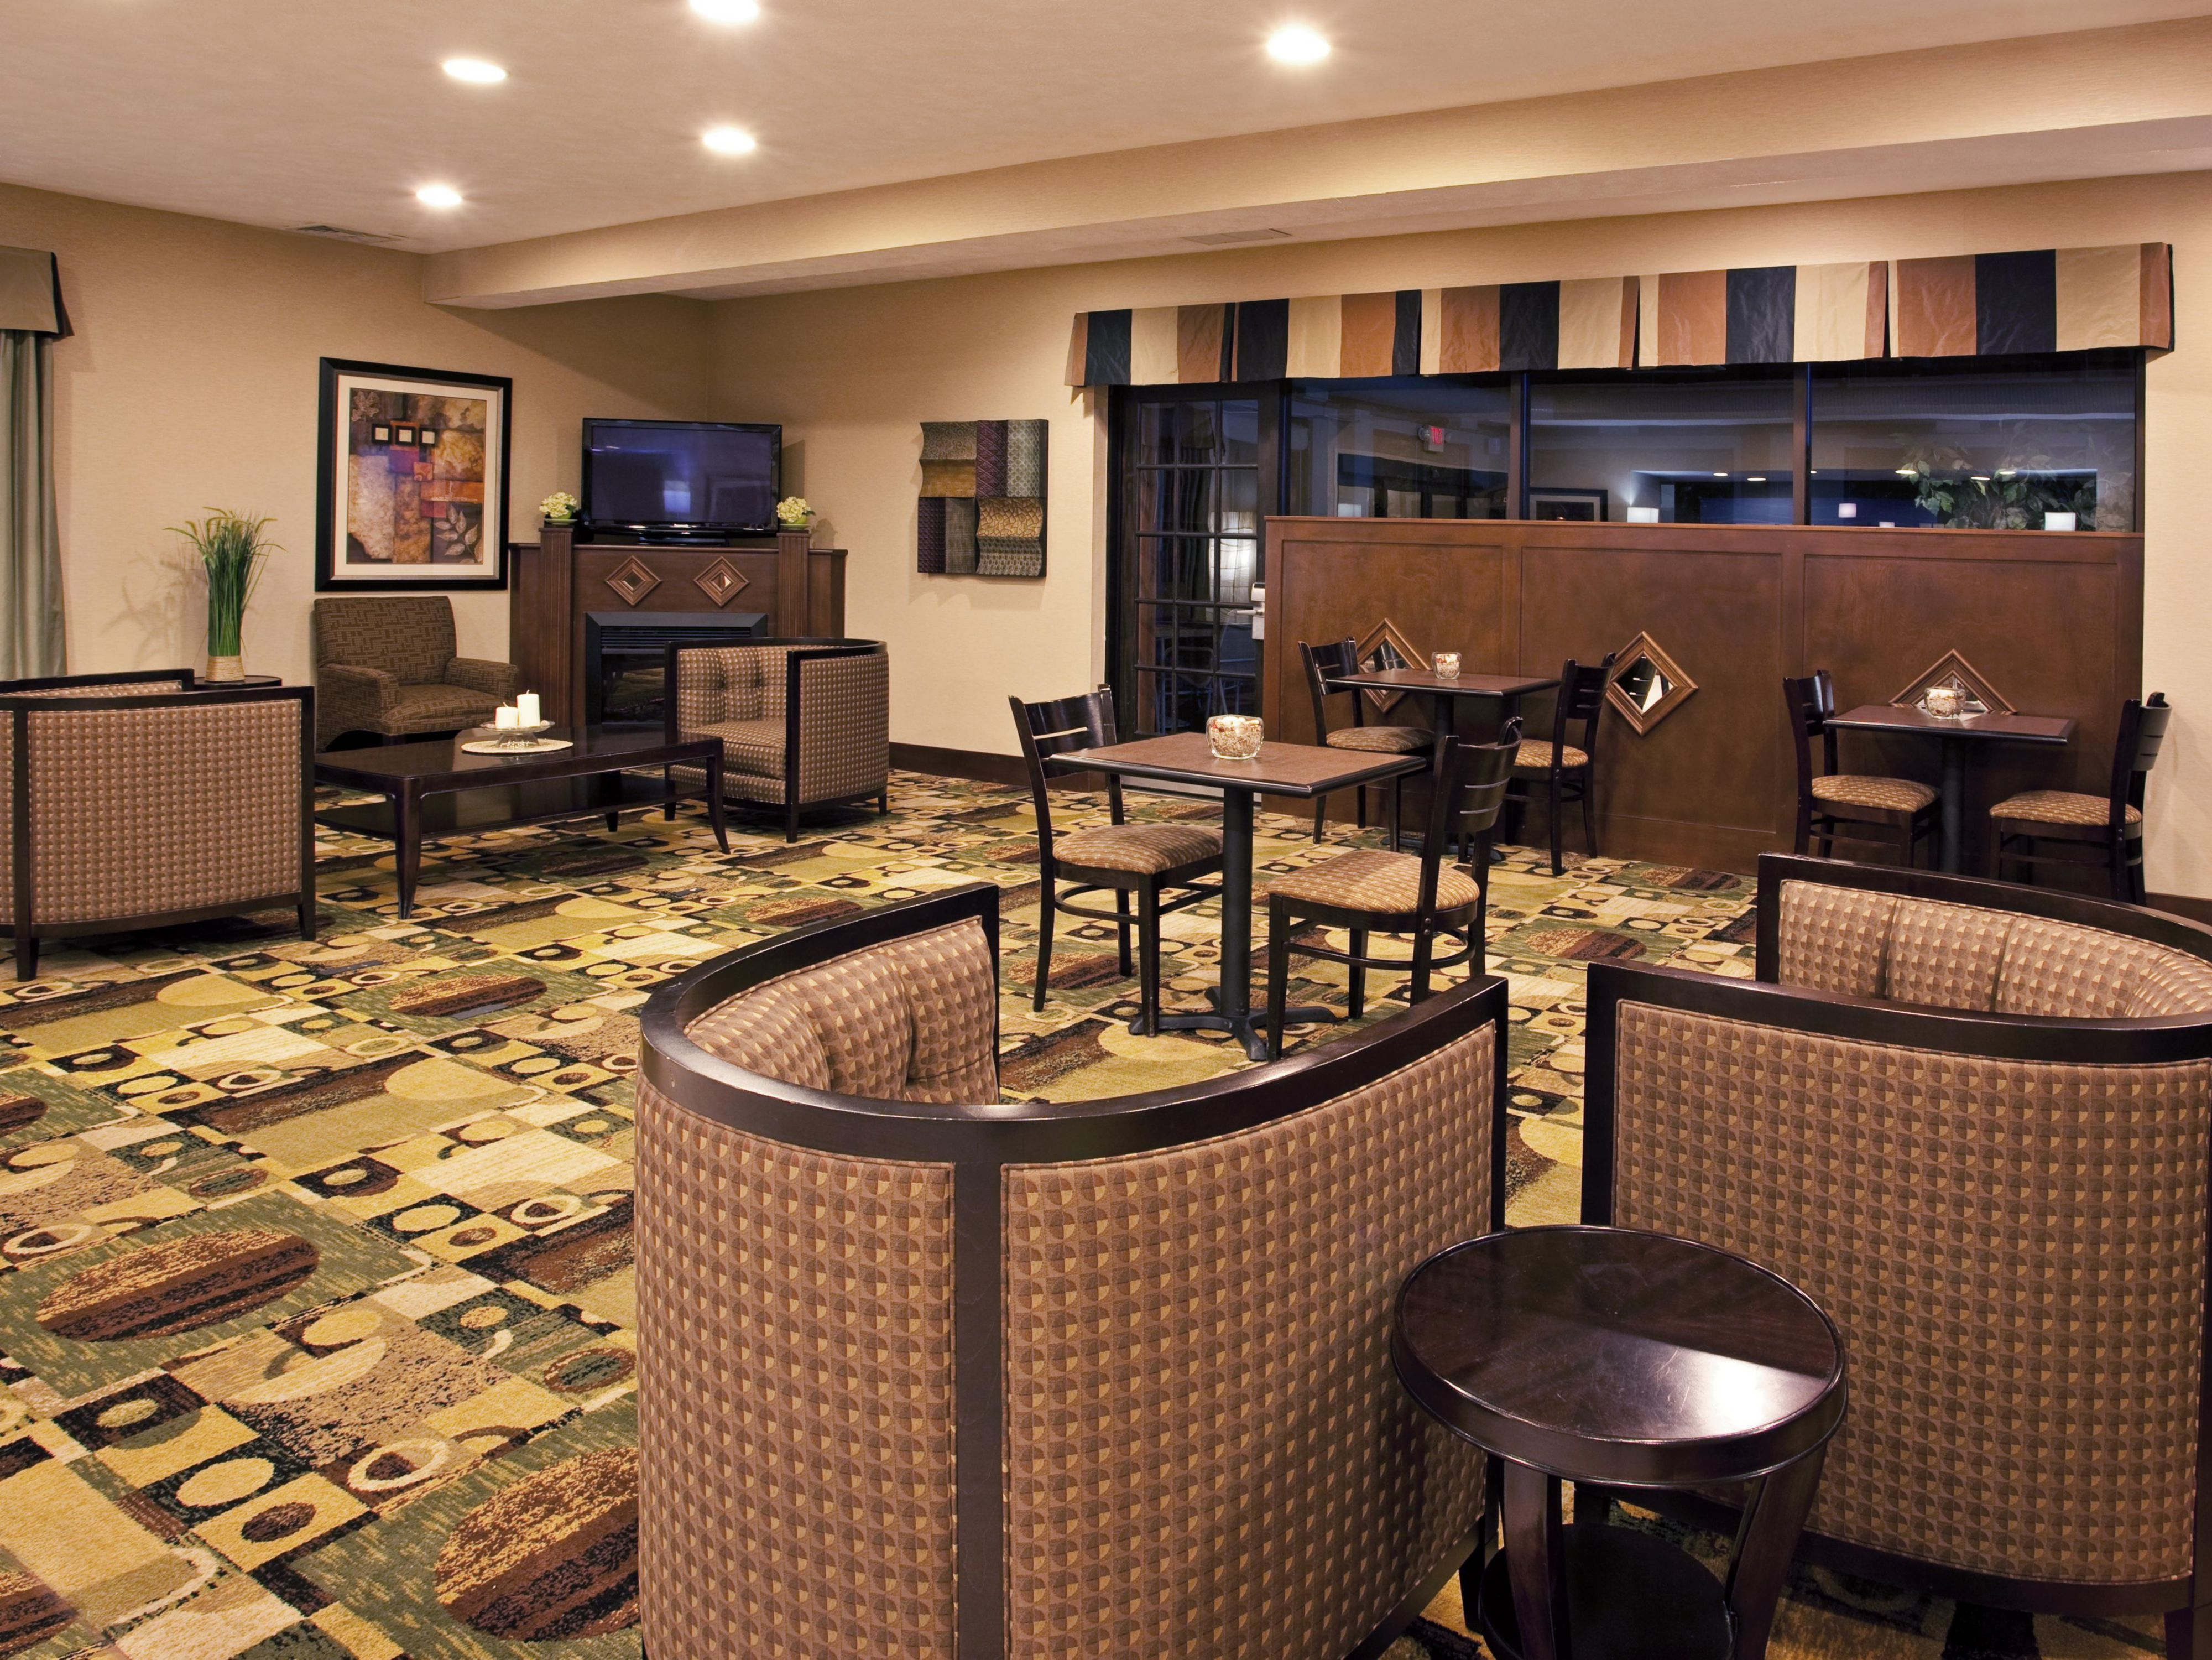 Unwind and watch some TV in our comfortable lobby